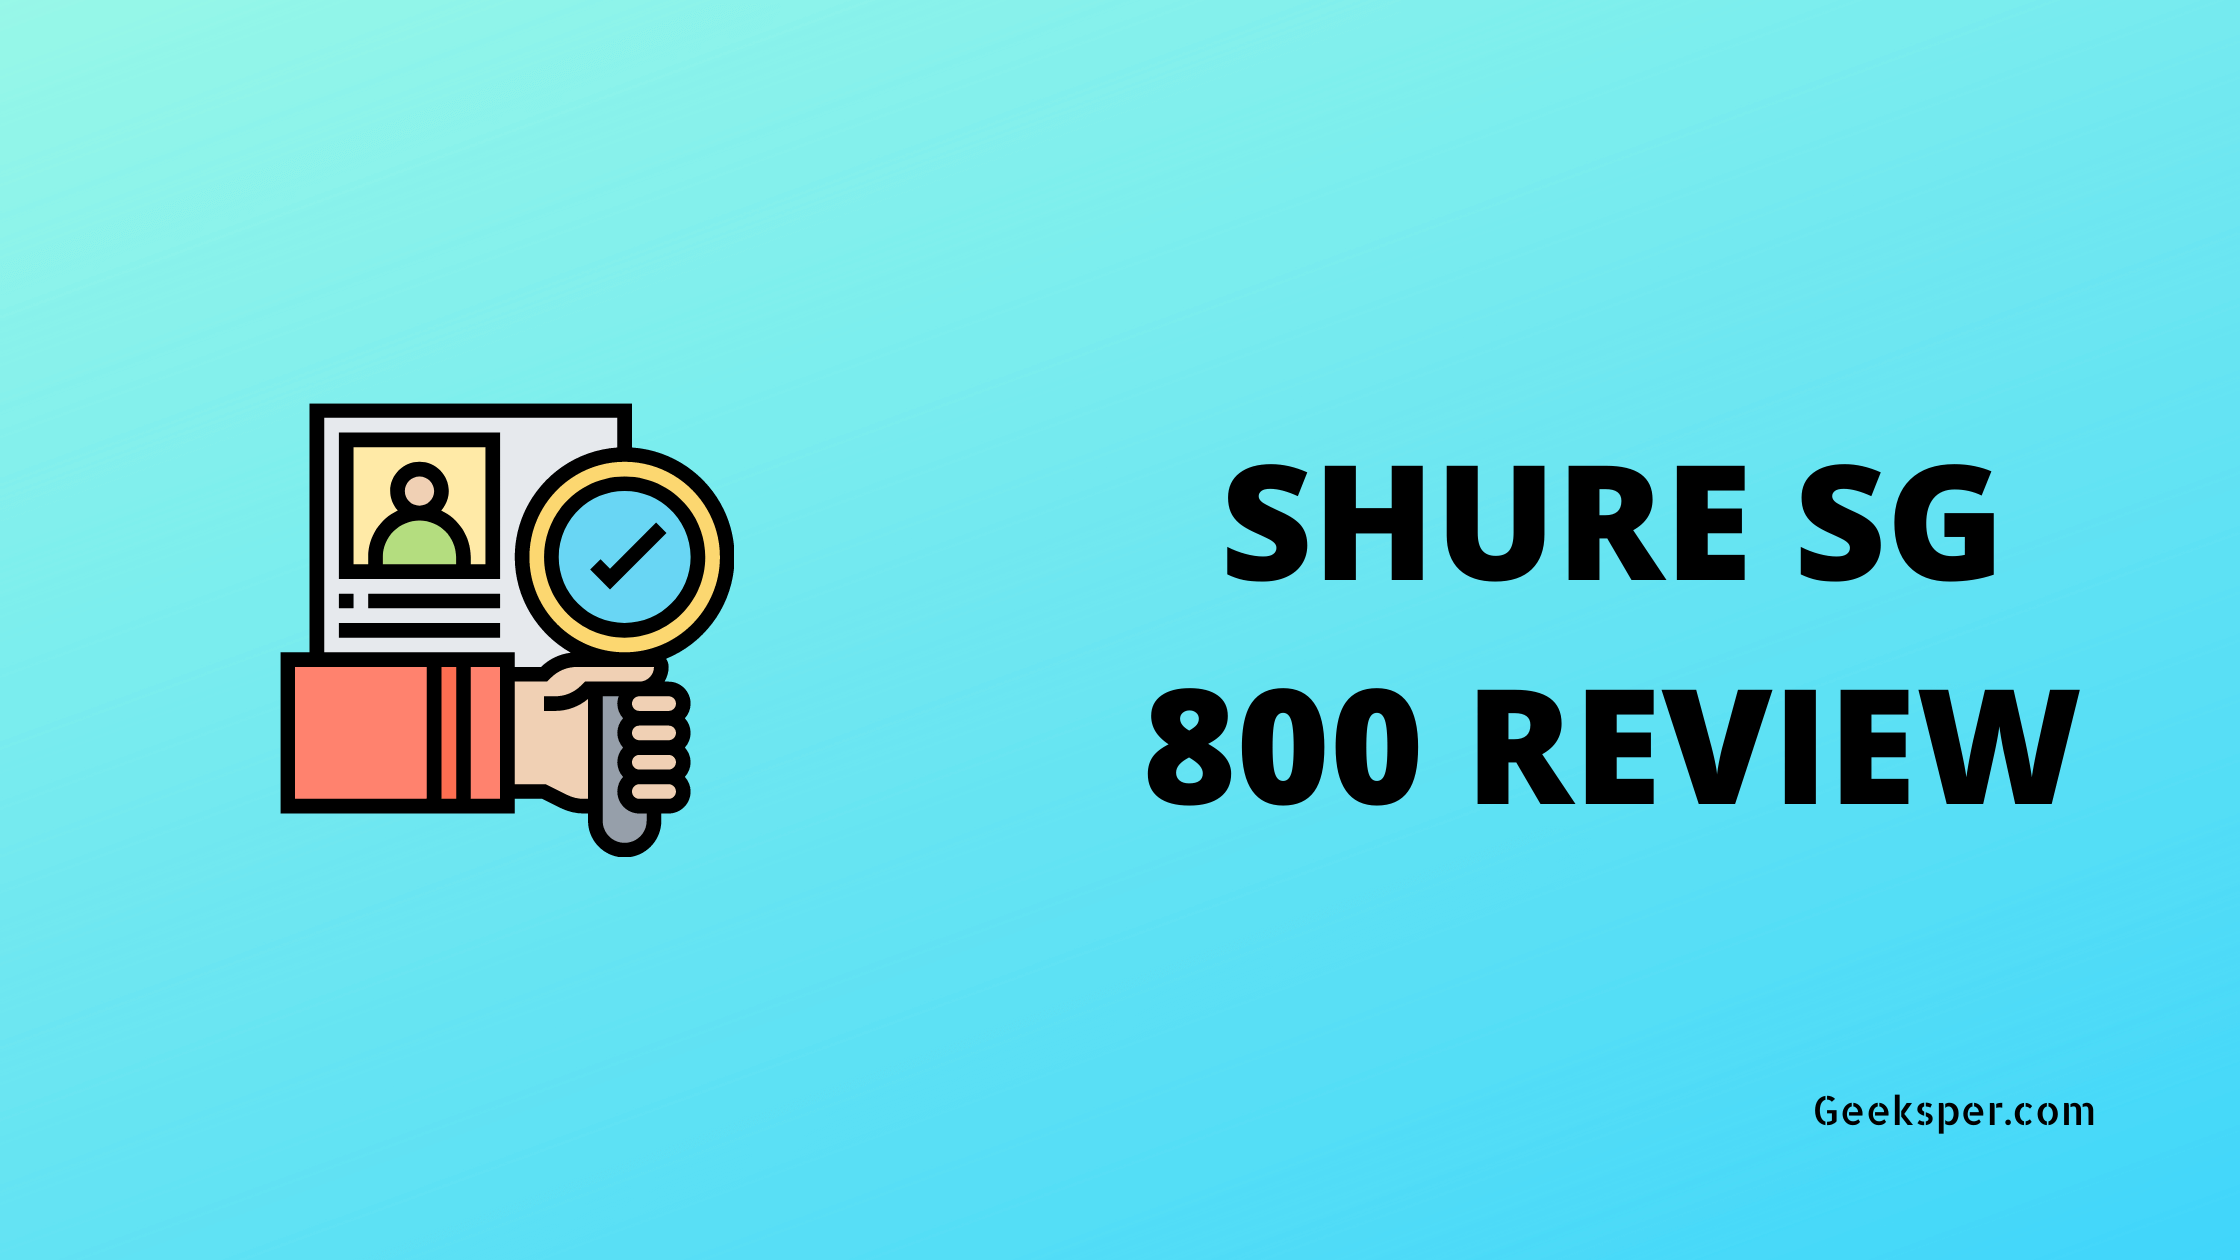 Shure SG800 Review